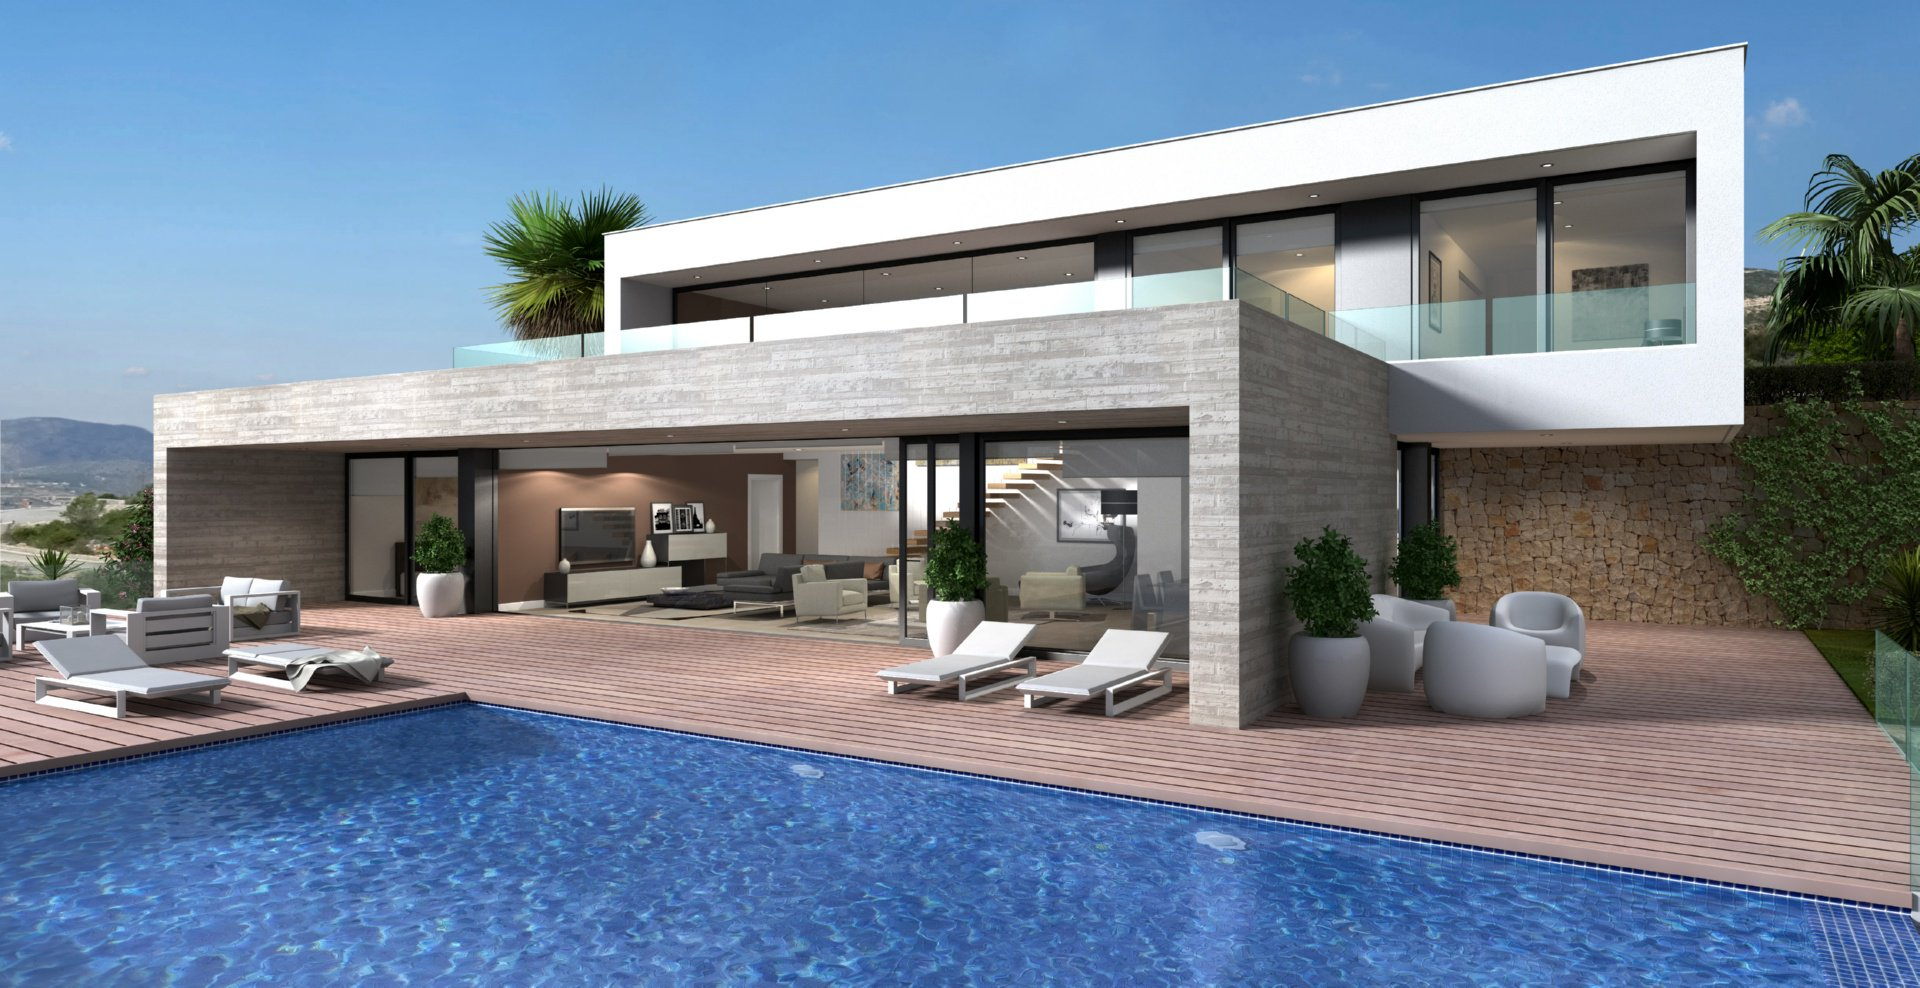 New modern build villa on privileged location